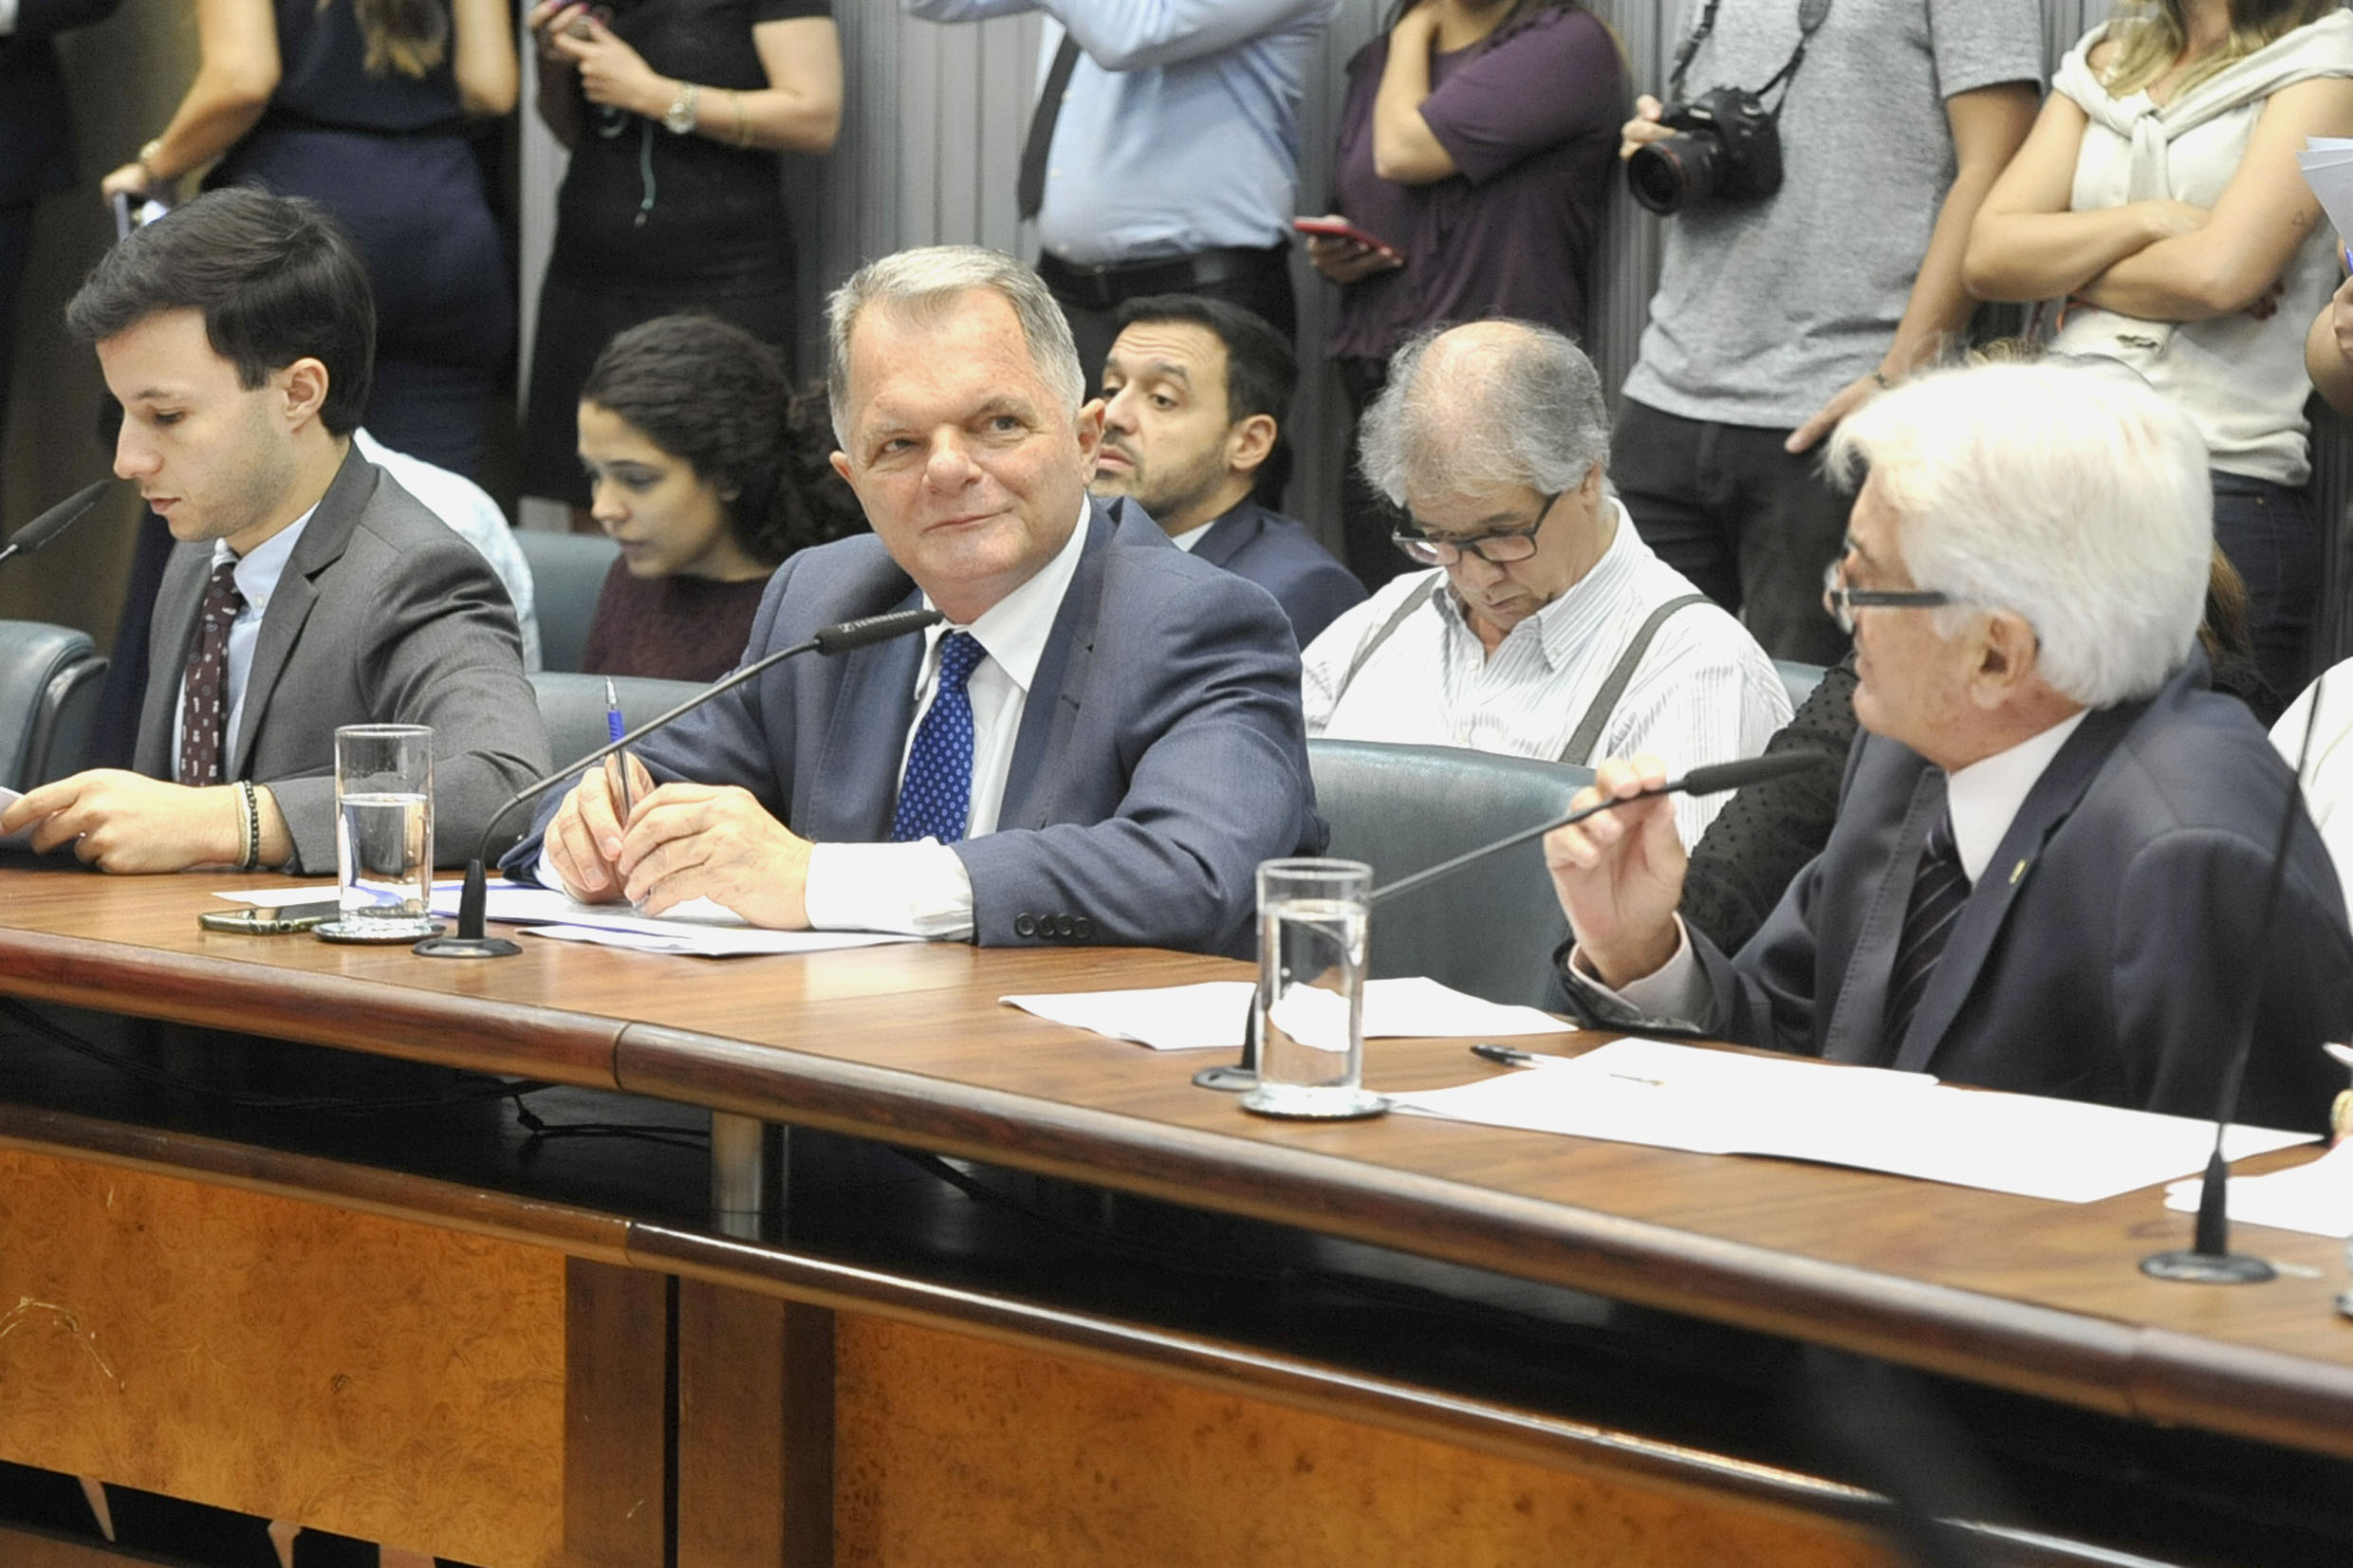 Parlamentares na comissão<a style='float:right' href='https://www3.al.sp.gov.br/repositorio/noticia/N-04-2019/fg233416.jpg' target=_blank><img src='/_img/material-file-download-white.png' width='14px' alt='Clique para baixar a imagem'></a>